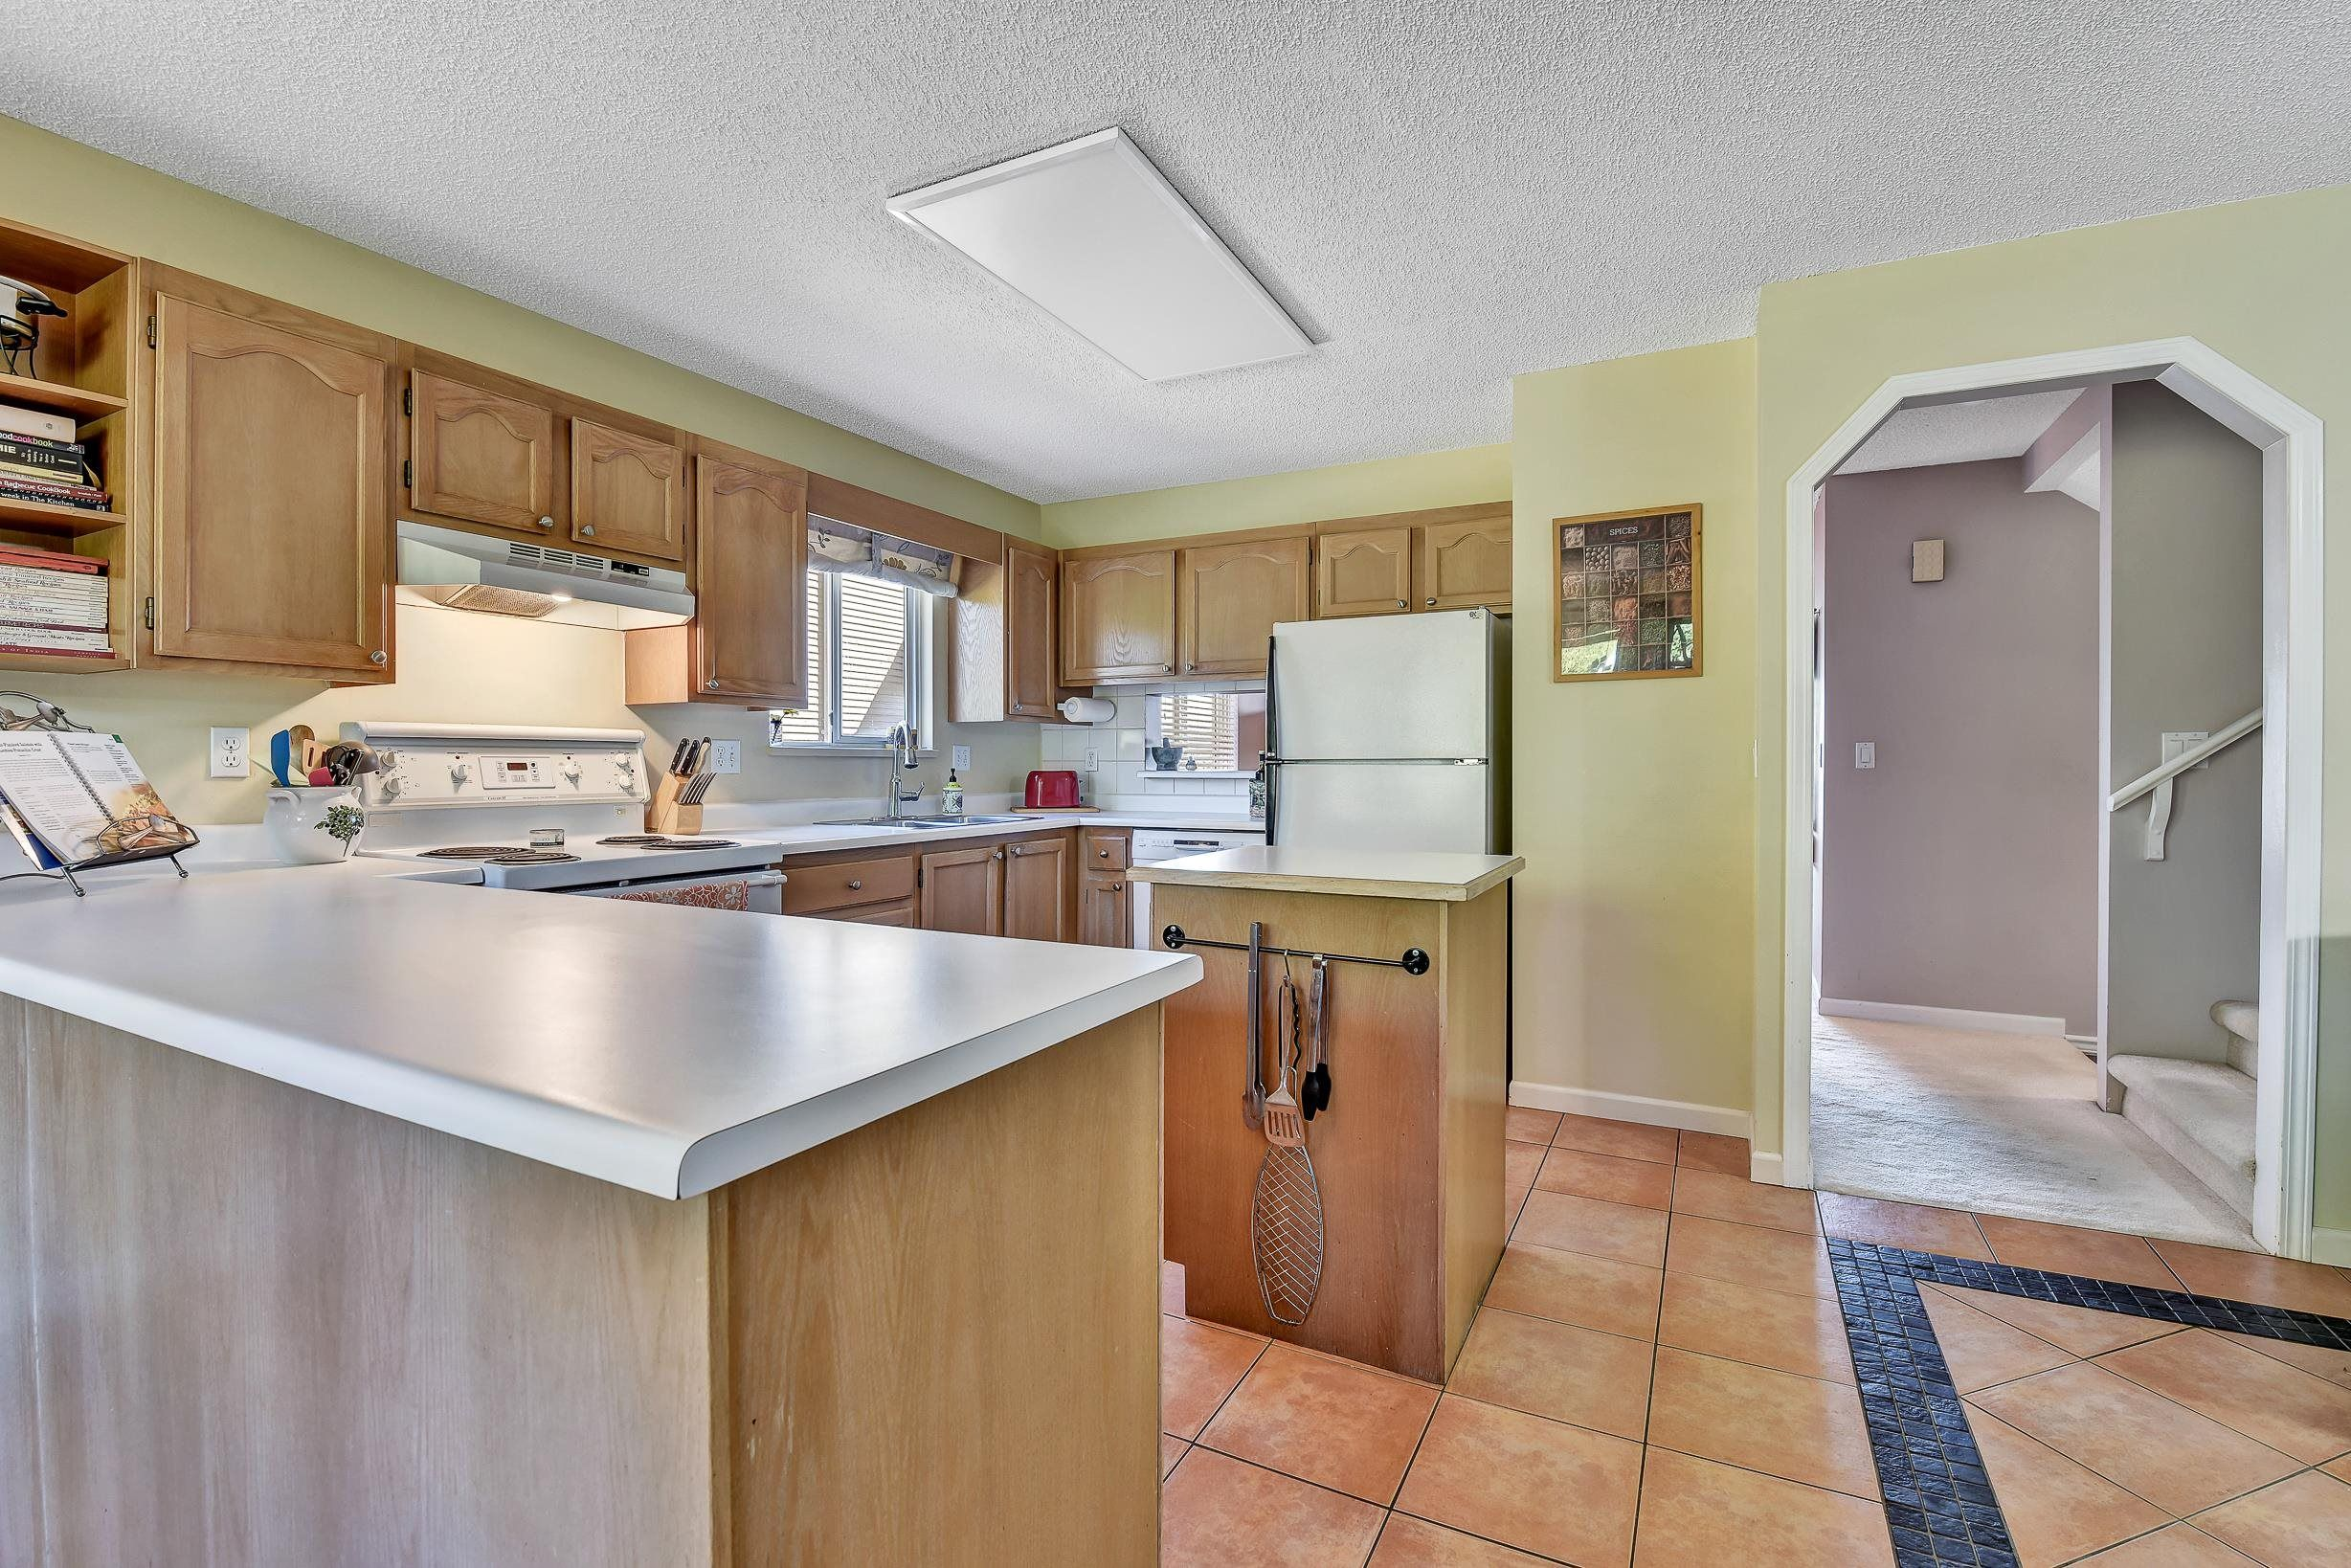 """Photo 12: Photos: 208 1140 CASTLE Crescent in Port Coquitlam: Citadel PQ Townhouse for sale in """"THE UPLANDS"""" : MLS®# R2609078"""